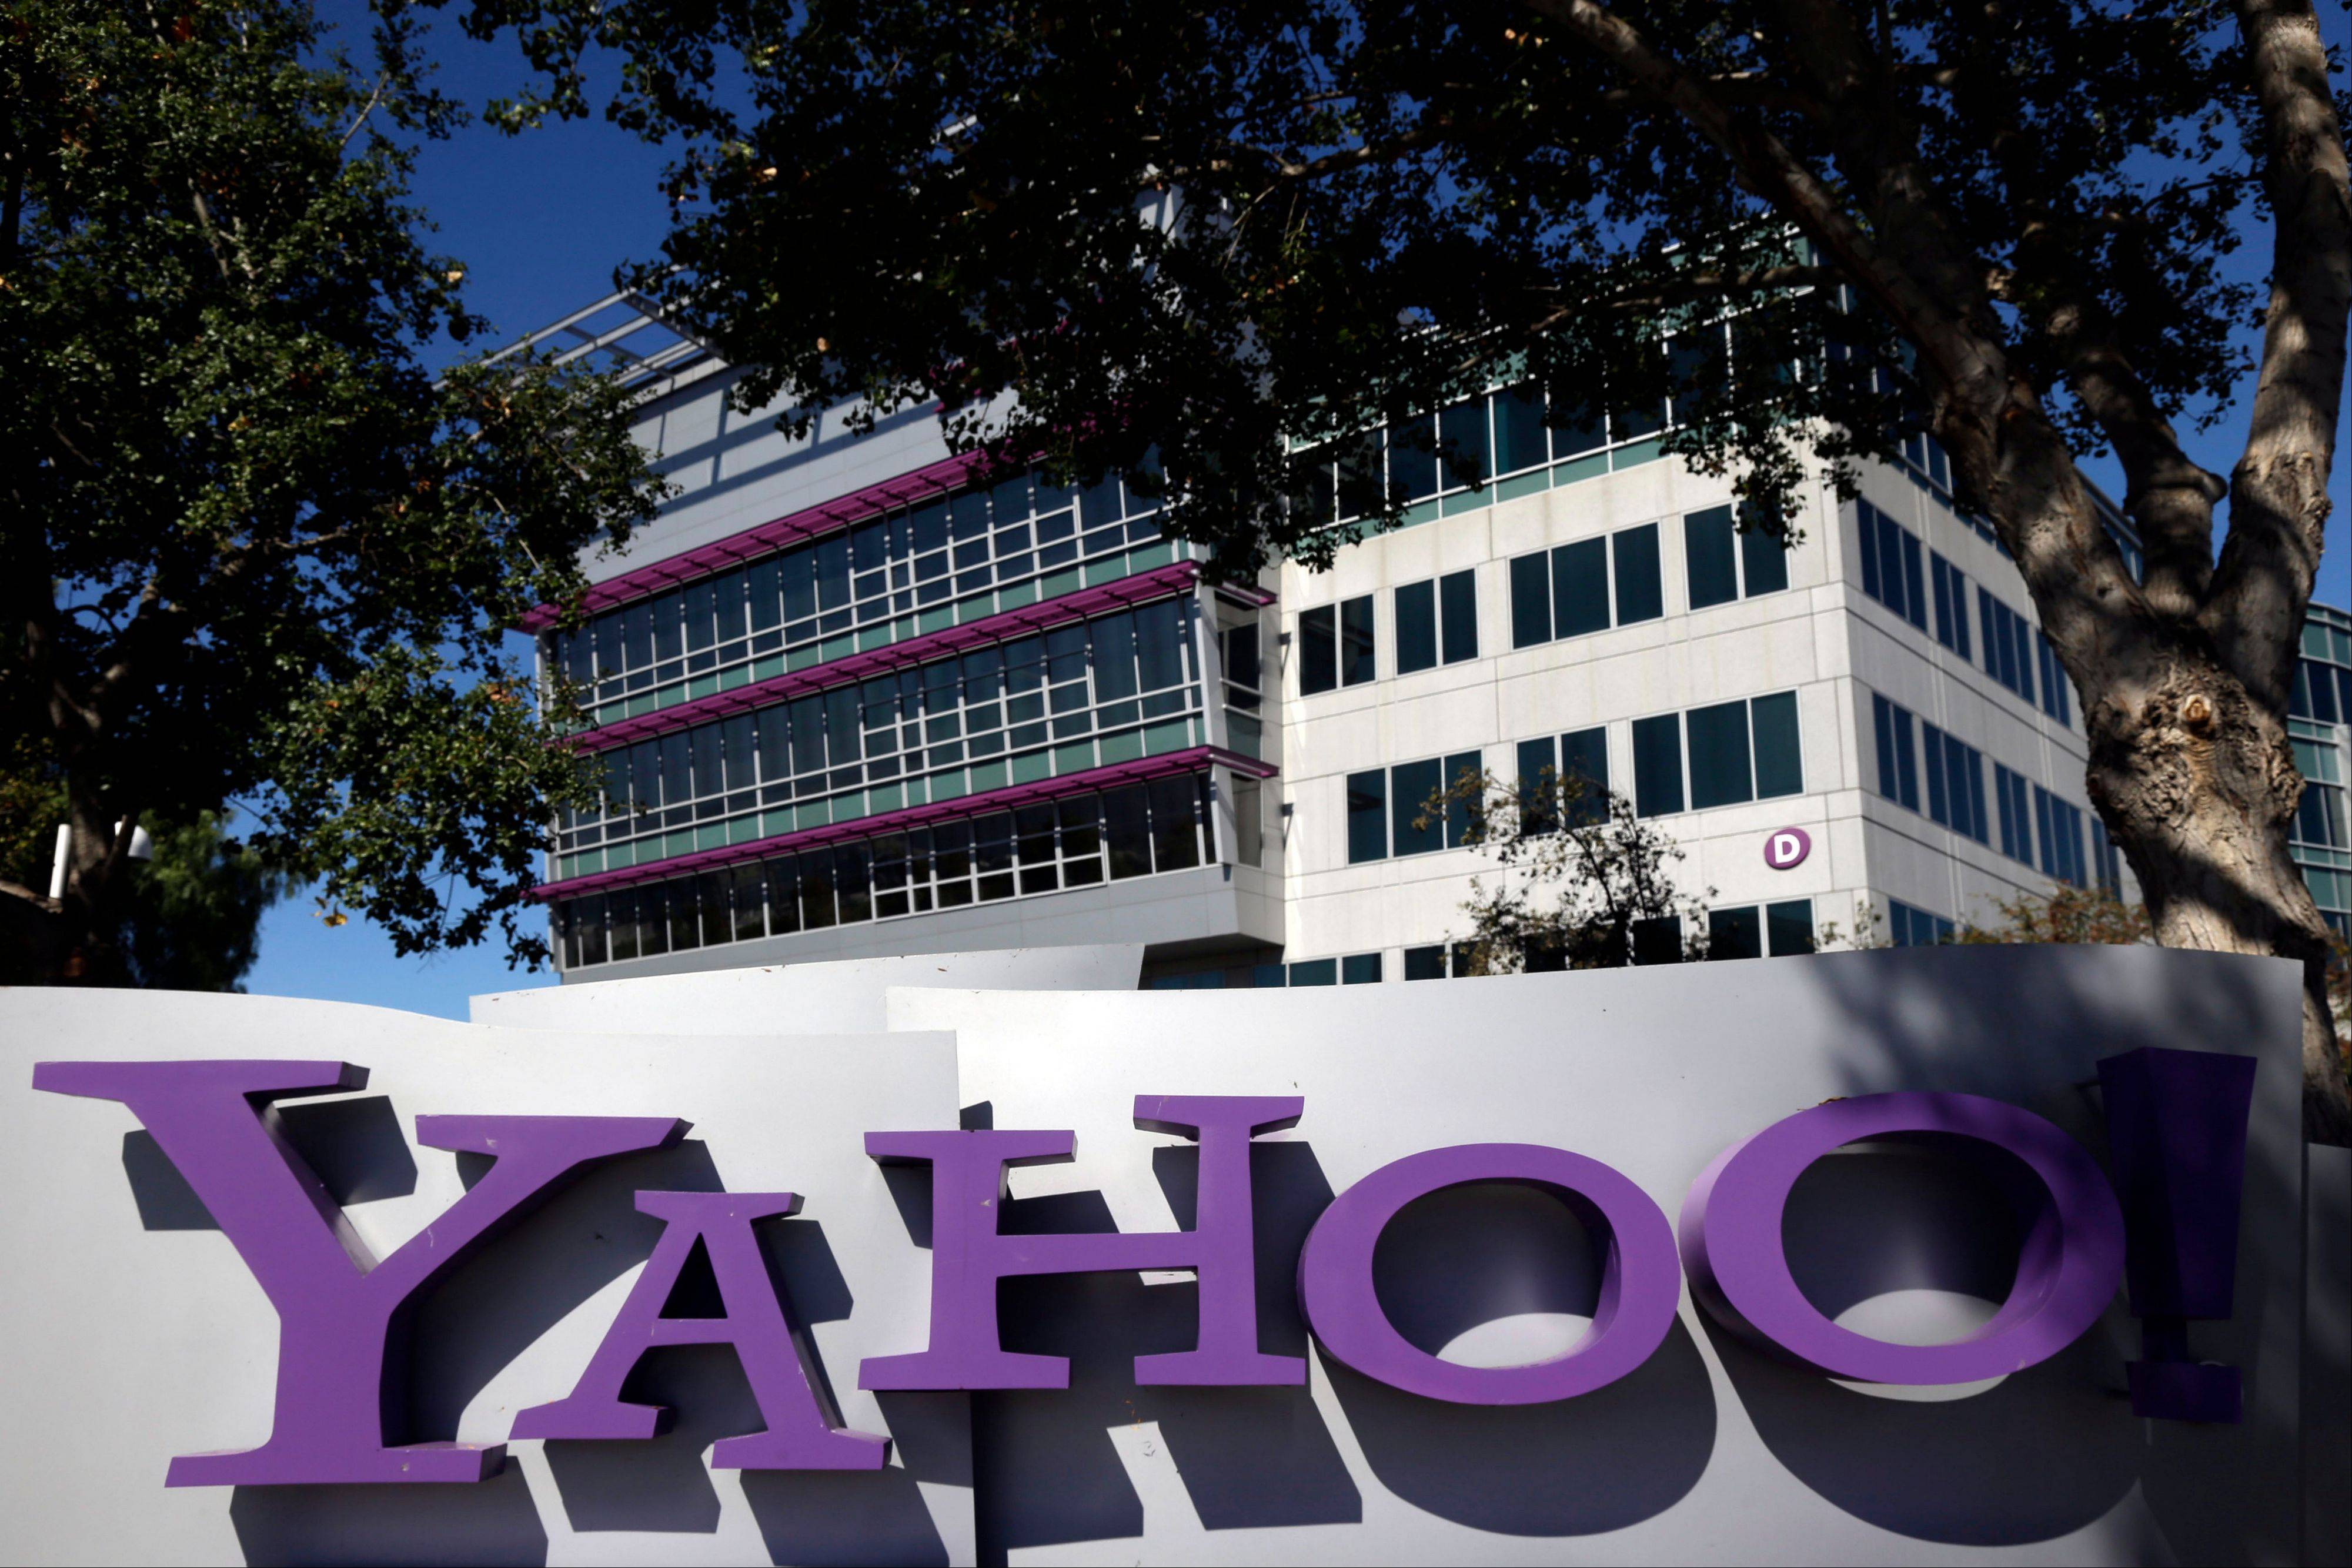 The U.S. Foreign Intelligence Surveillance Court, which reviews government requests to spy on individuals, ruled Monday that information should be made public about a 2008 case that ordered Yahoo Inc. to turn over customer data.